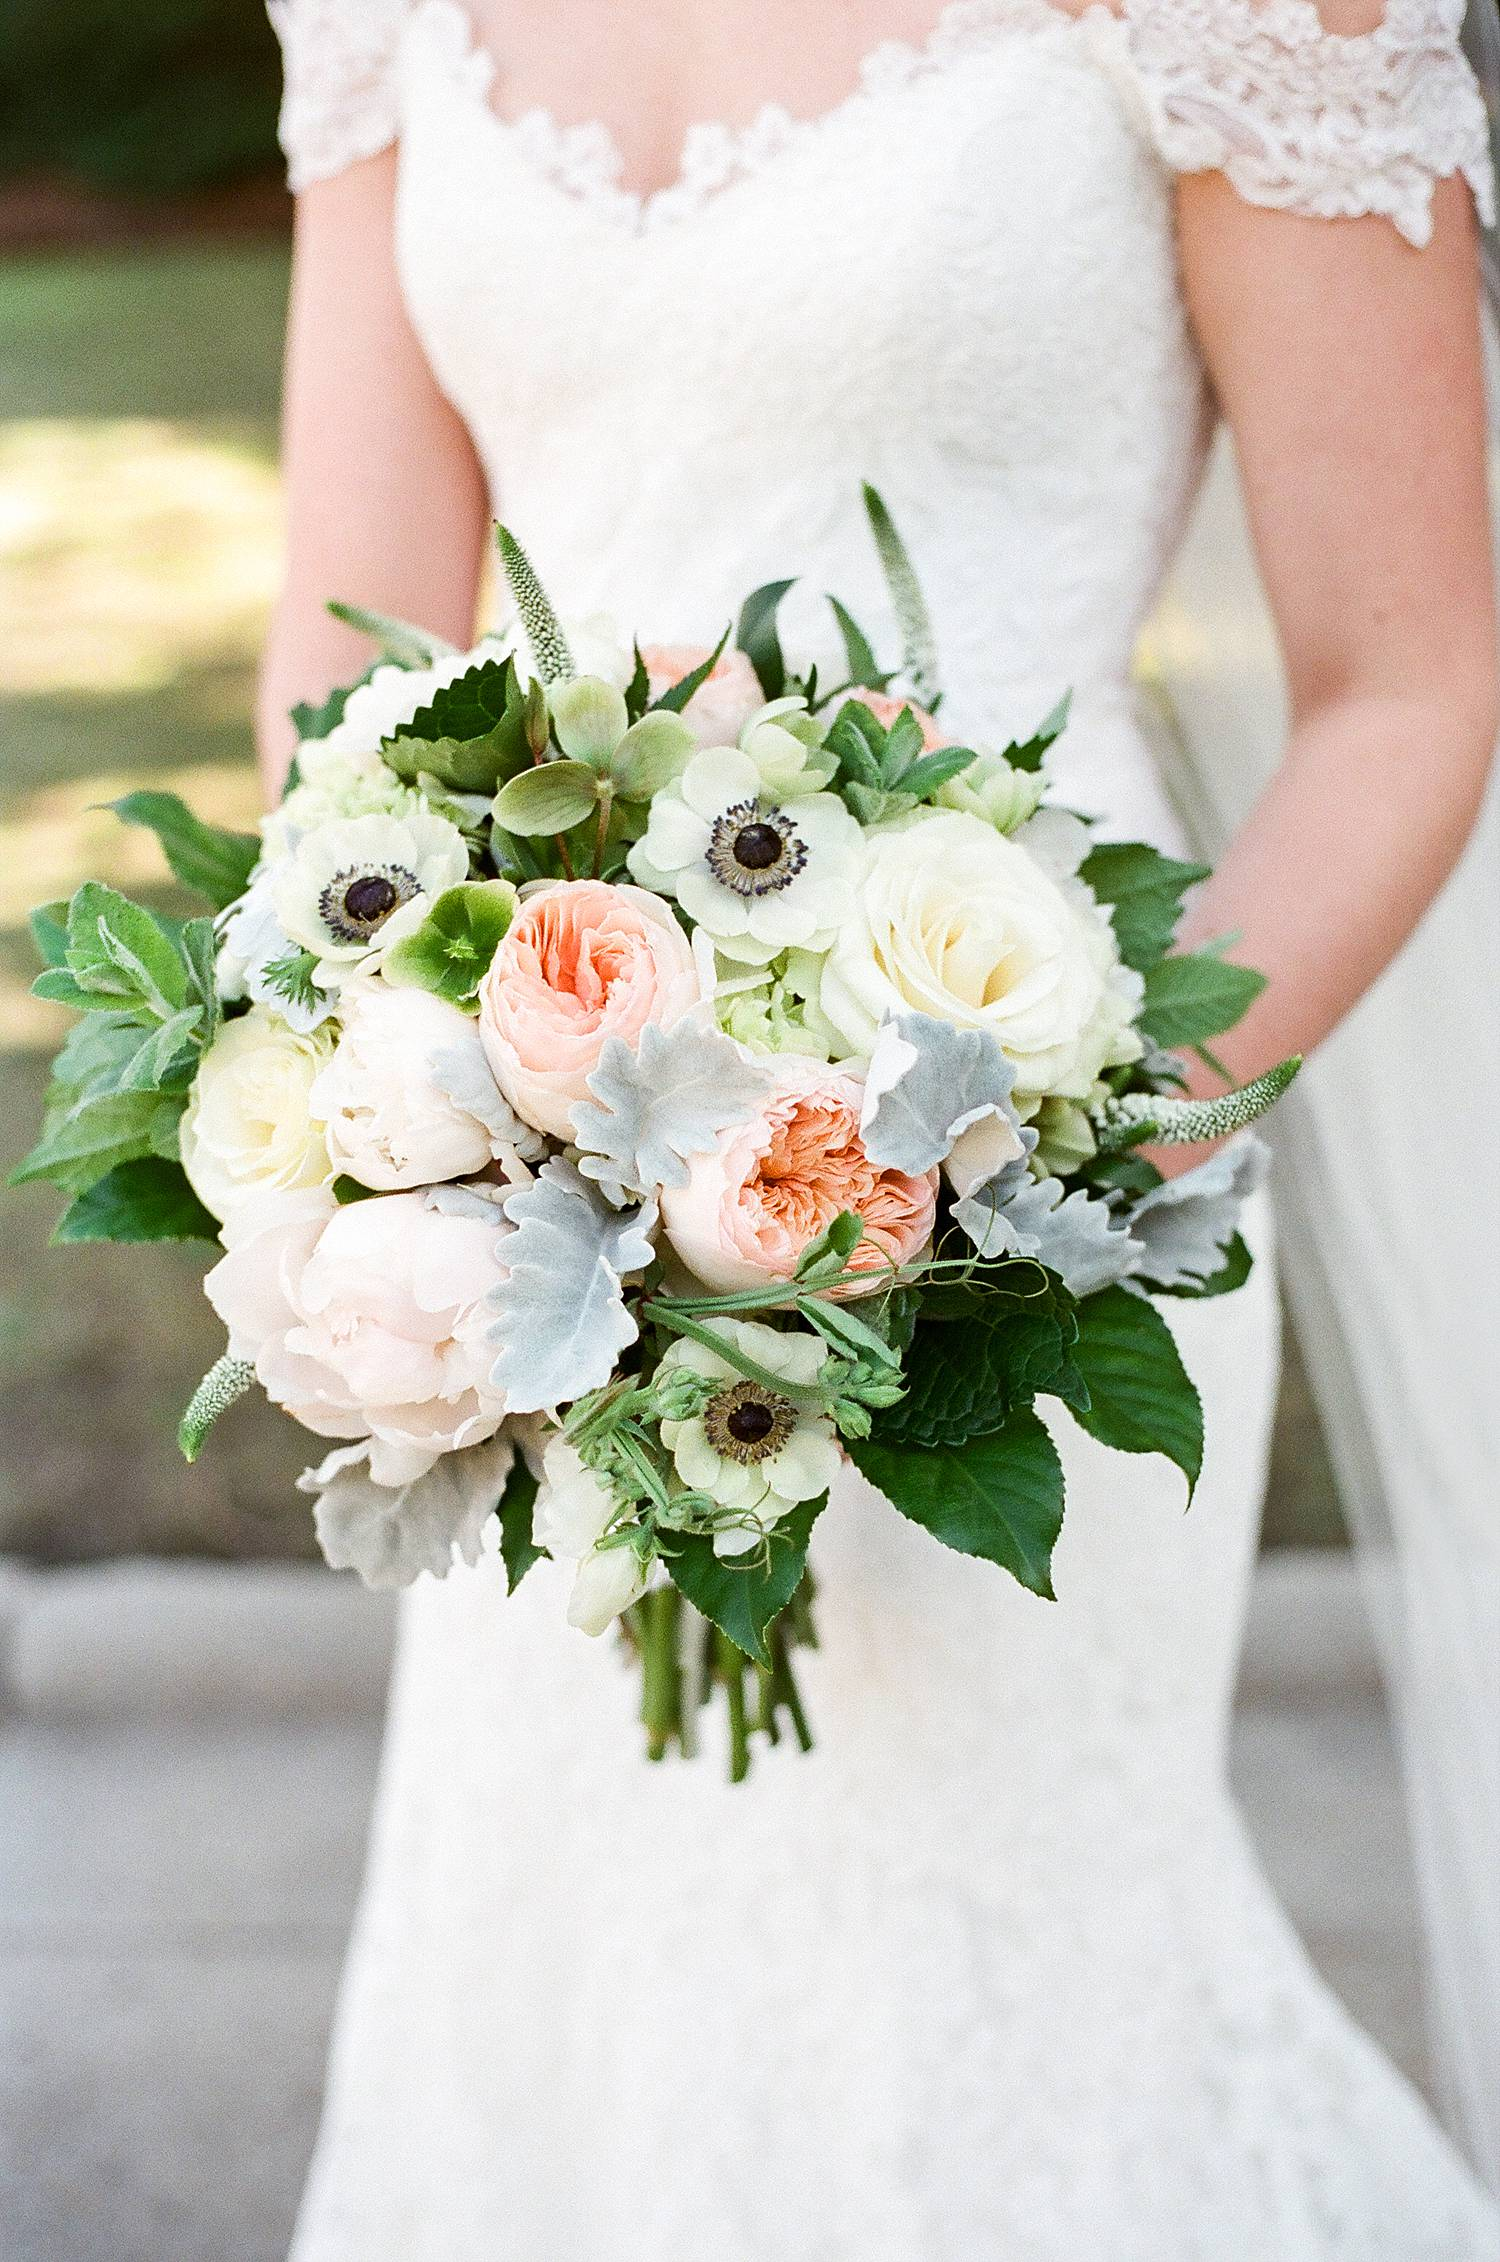 Featured Floral: Juliet Roses, Veronica Anenomes, Dusty Miller, Peonies, Hellebores, Mint - Jesslynn + Scott, River Room at St. Paul's, Ashley Seawell Photography